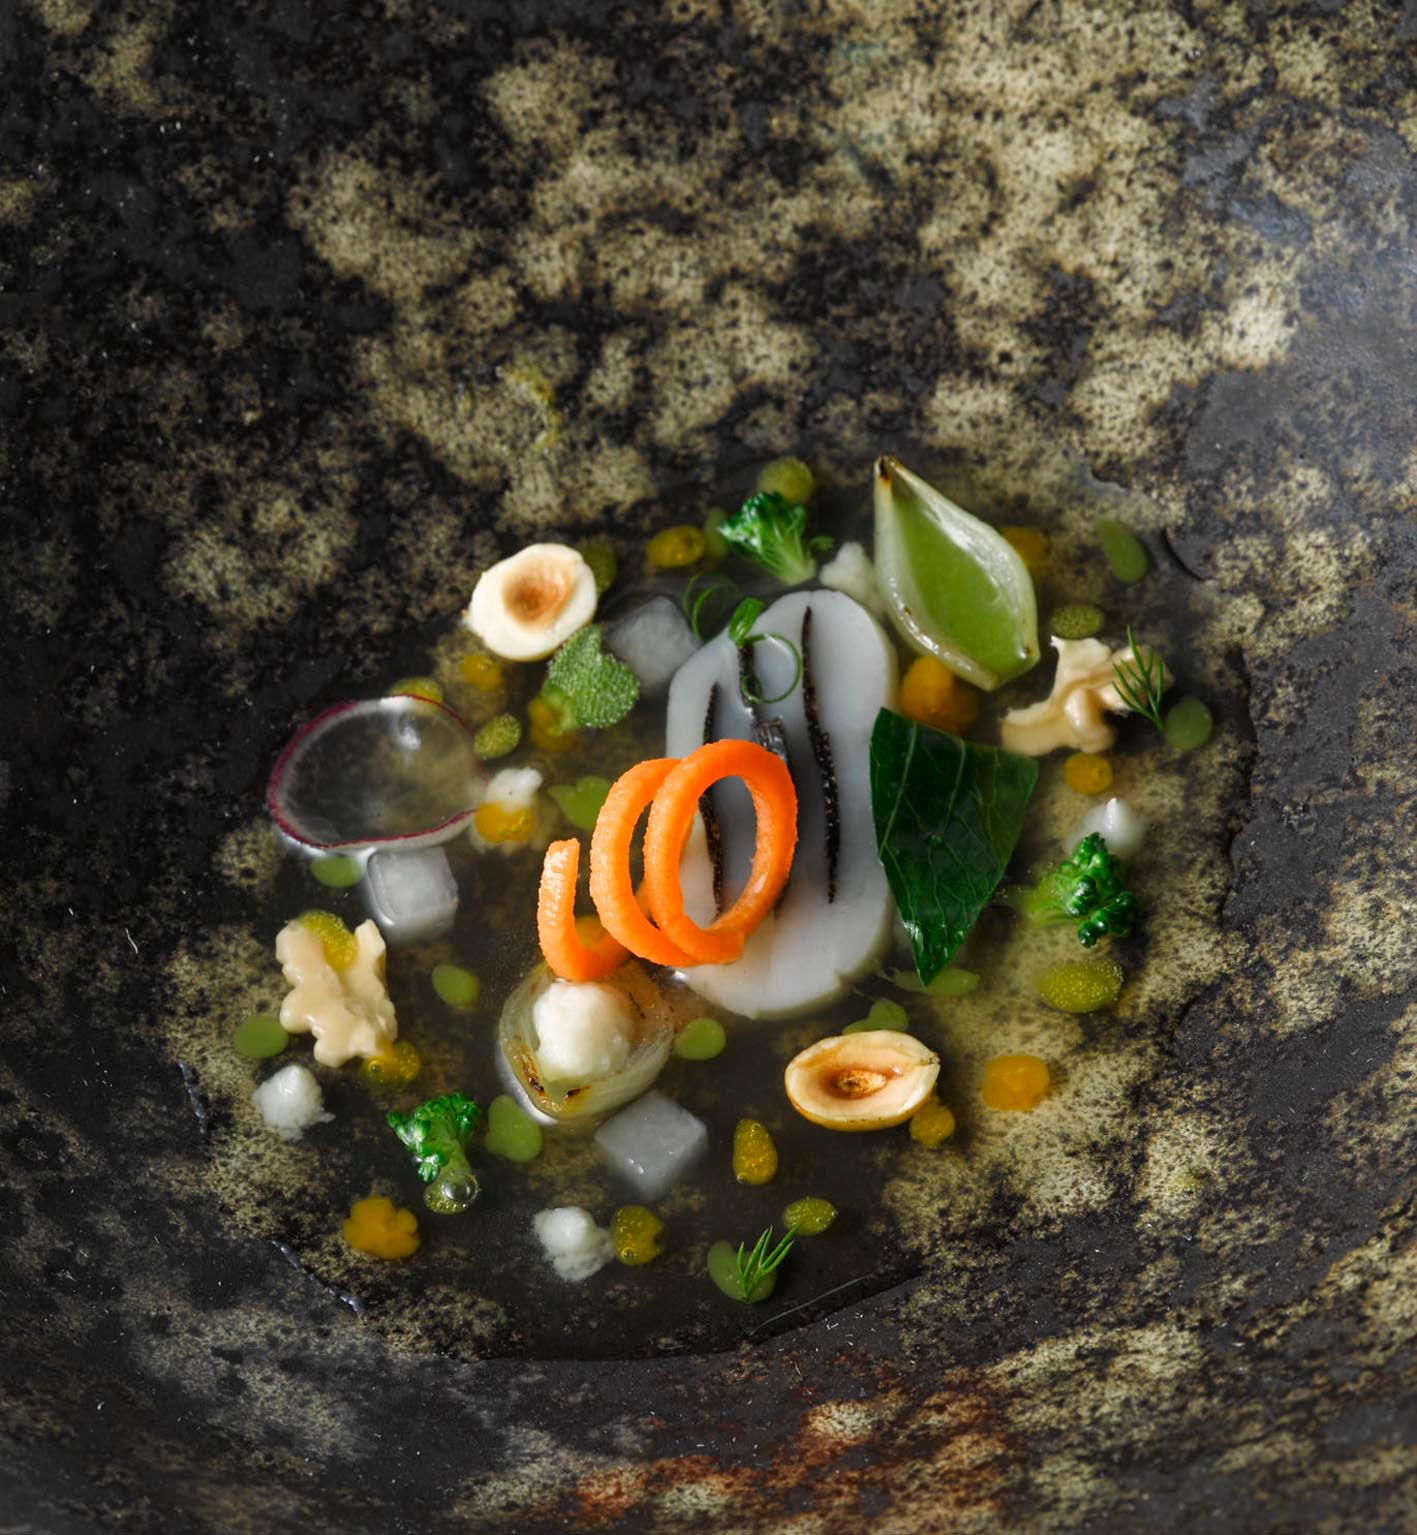 Consome vegetal a baja temperatura - El Celler Can Roca